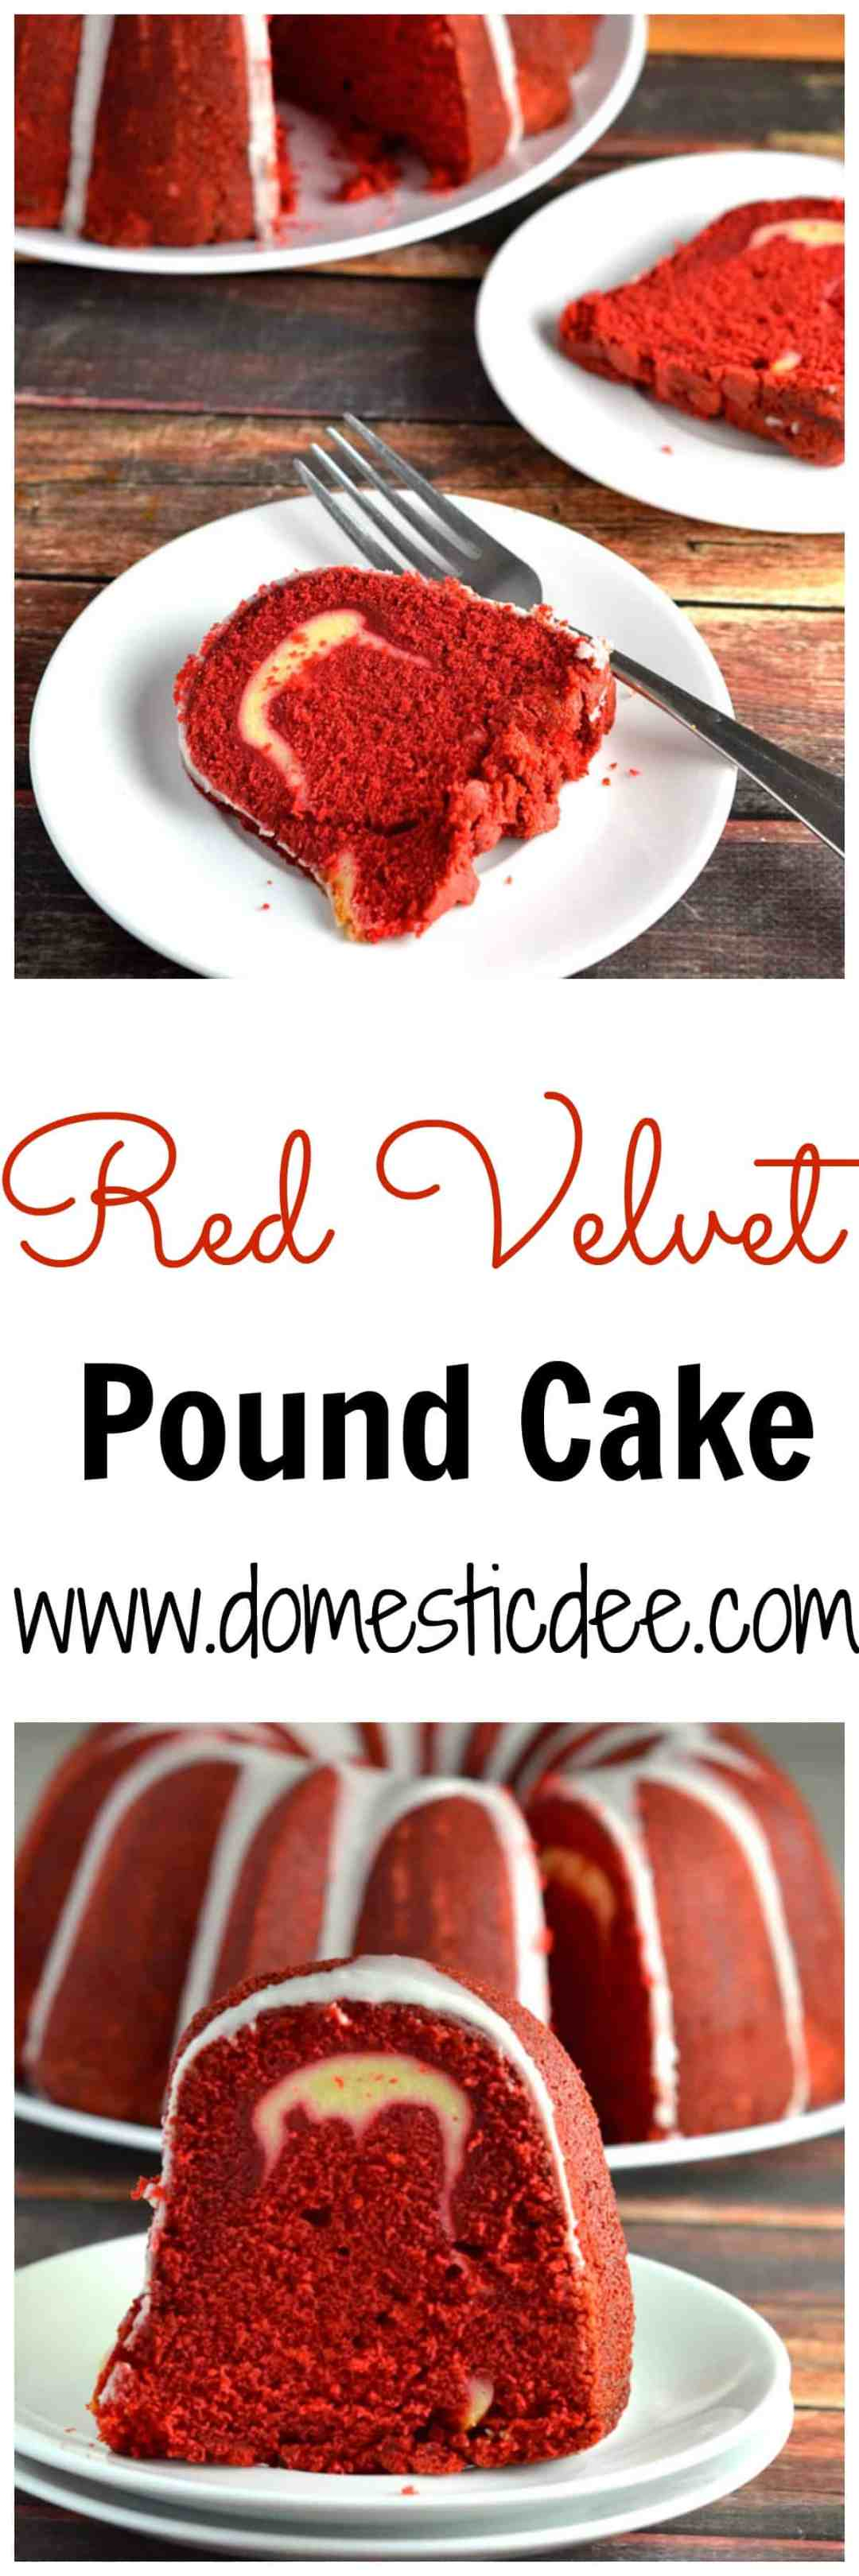 Red Velvet Pound Cake- This Red Velvet Pound cake is moist, flavorful, and delicious. Each bite taken will force your taste buds to go wild! www.domesticdee.com